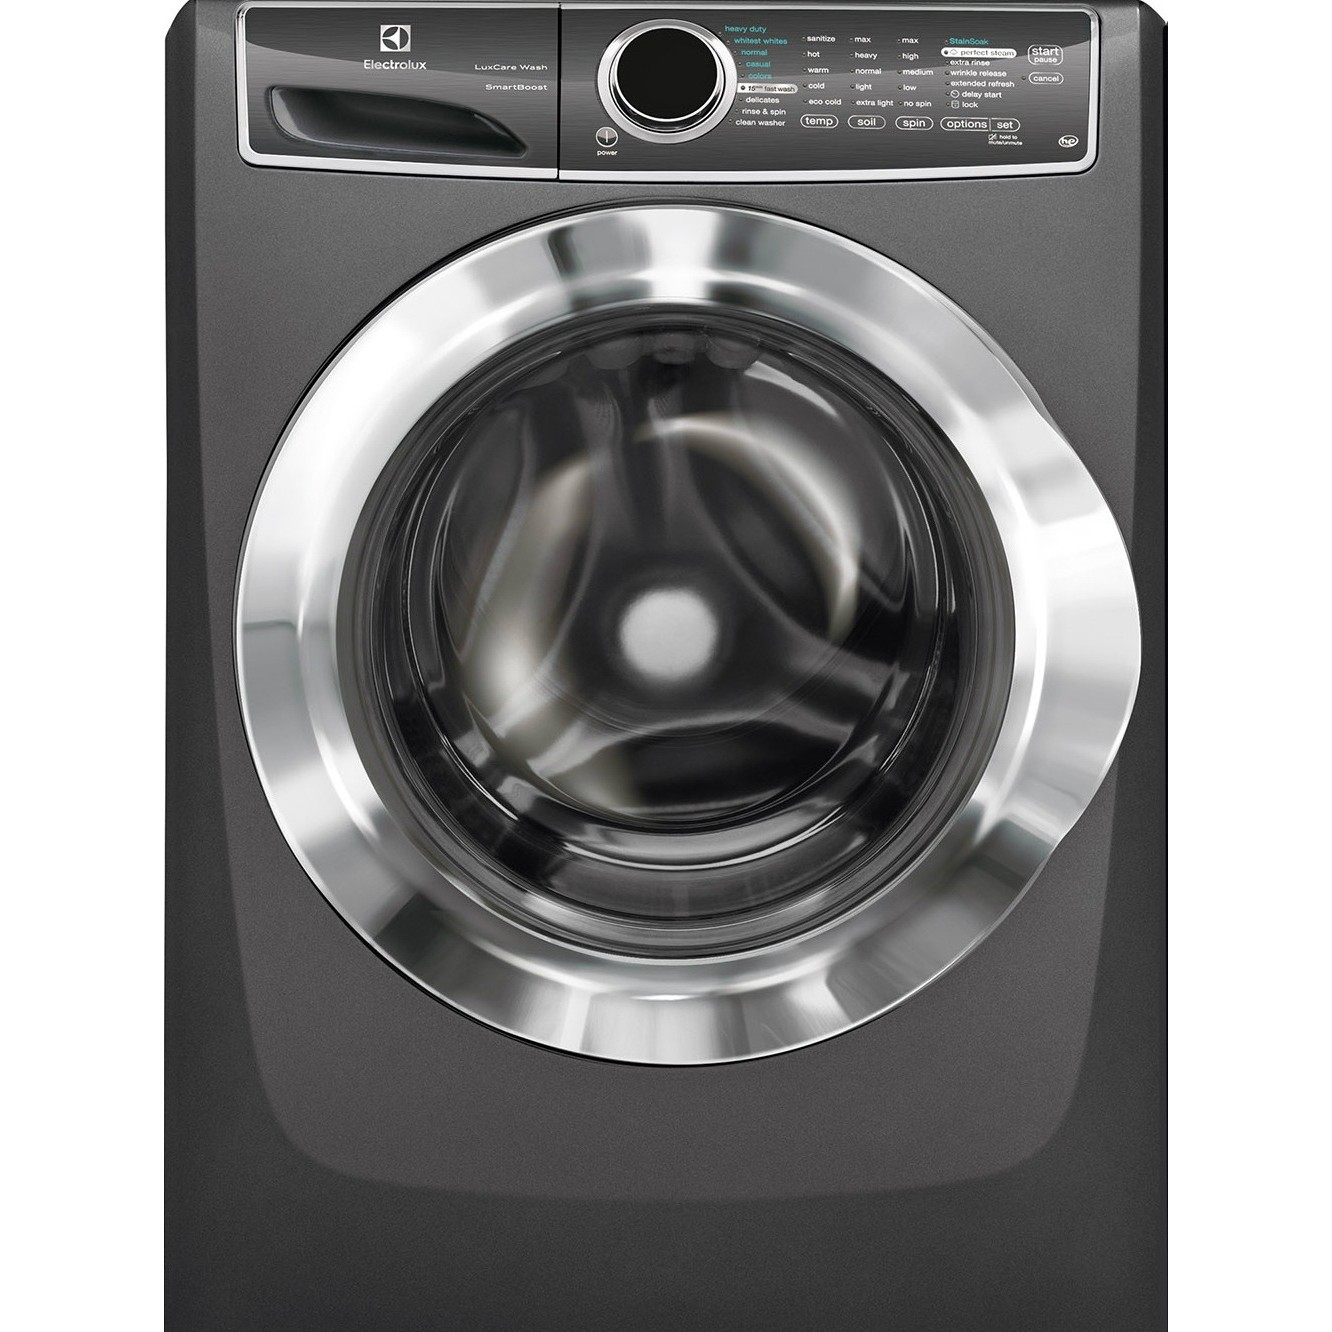 Efls617stt Electrolux Luxcare 27 Quot 4 4 Cu Ft Washer Steam